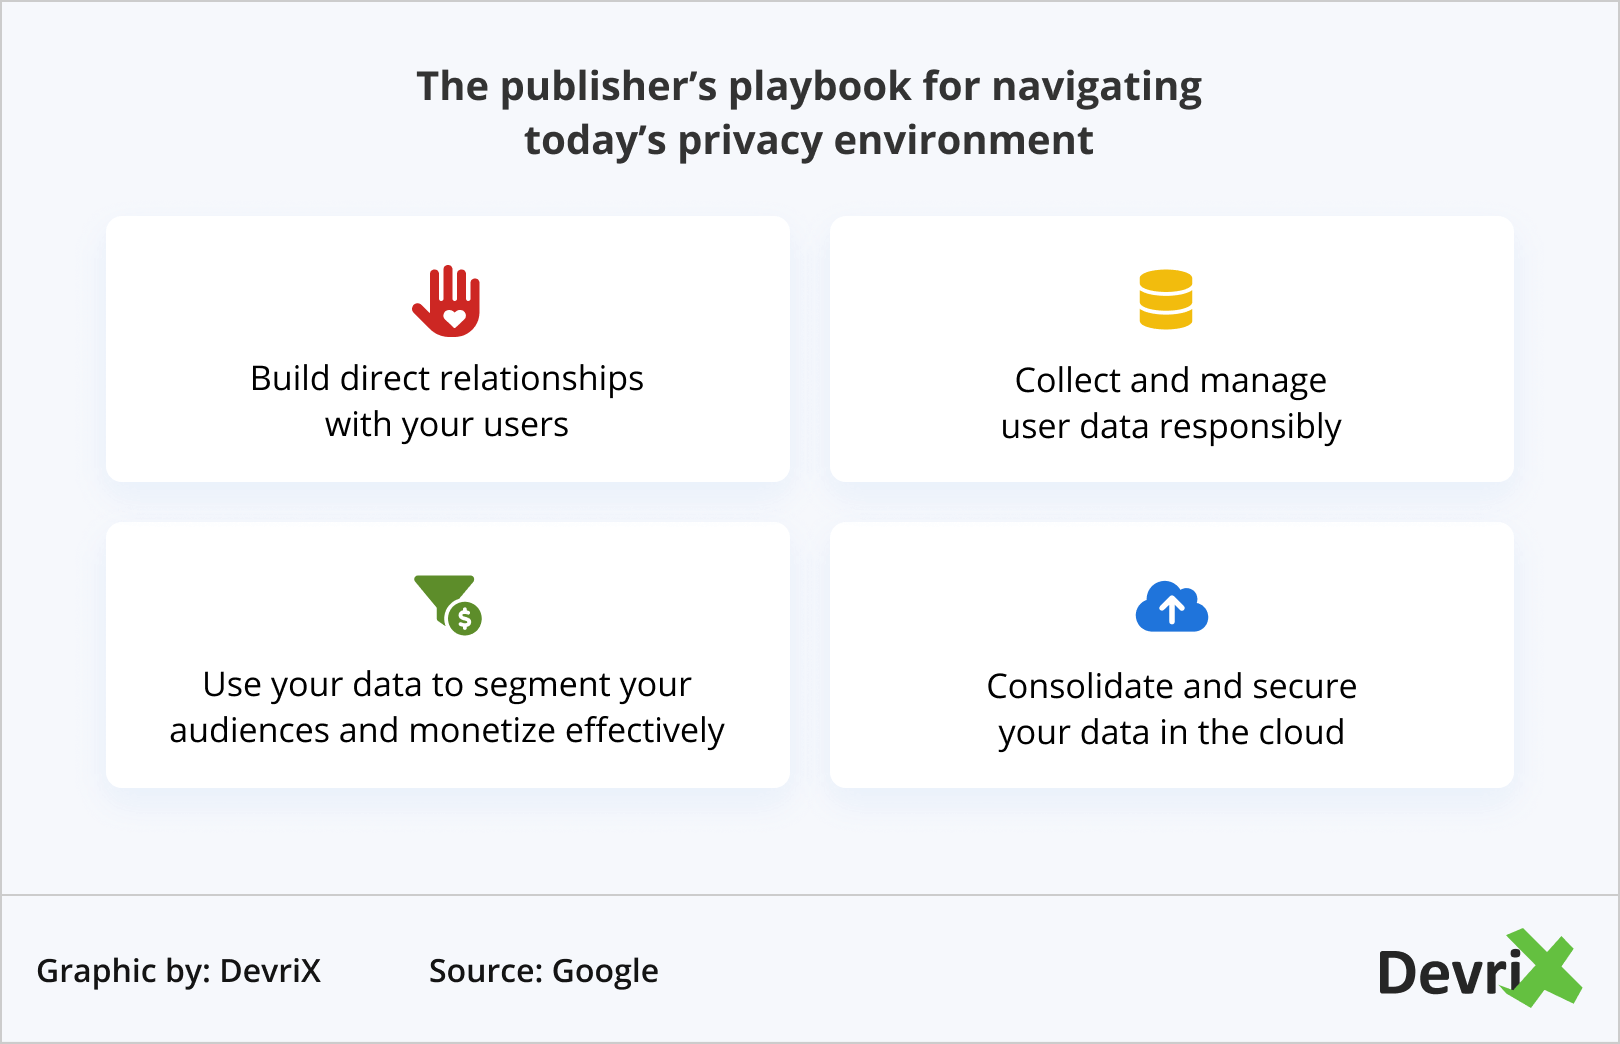 The publisher's playbook for navigating today's privacy environment